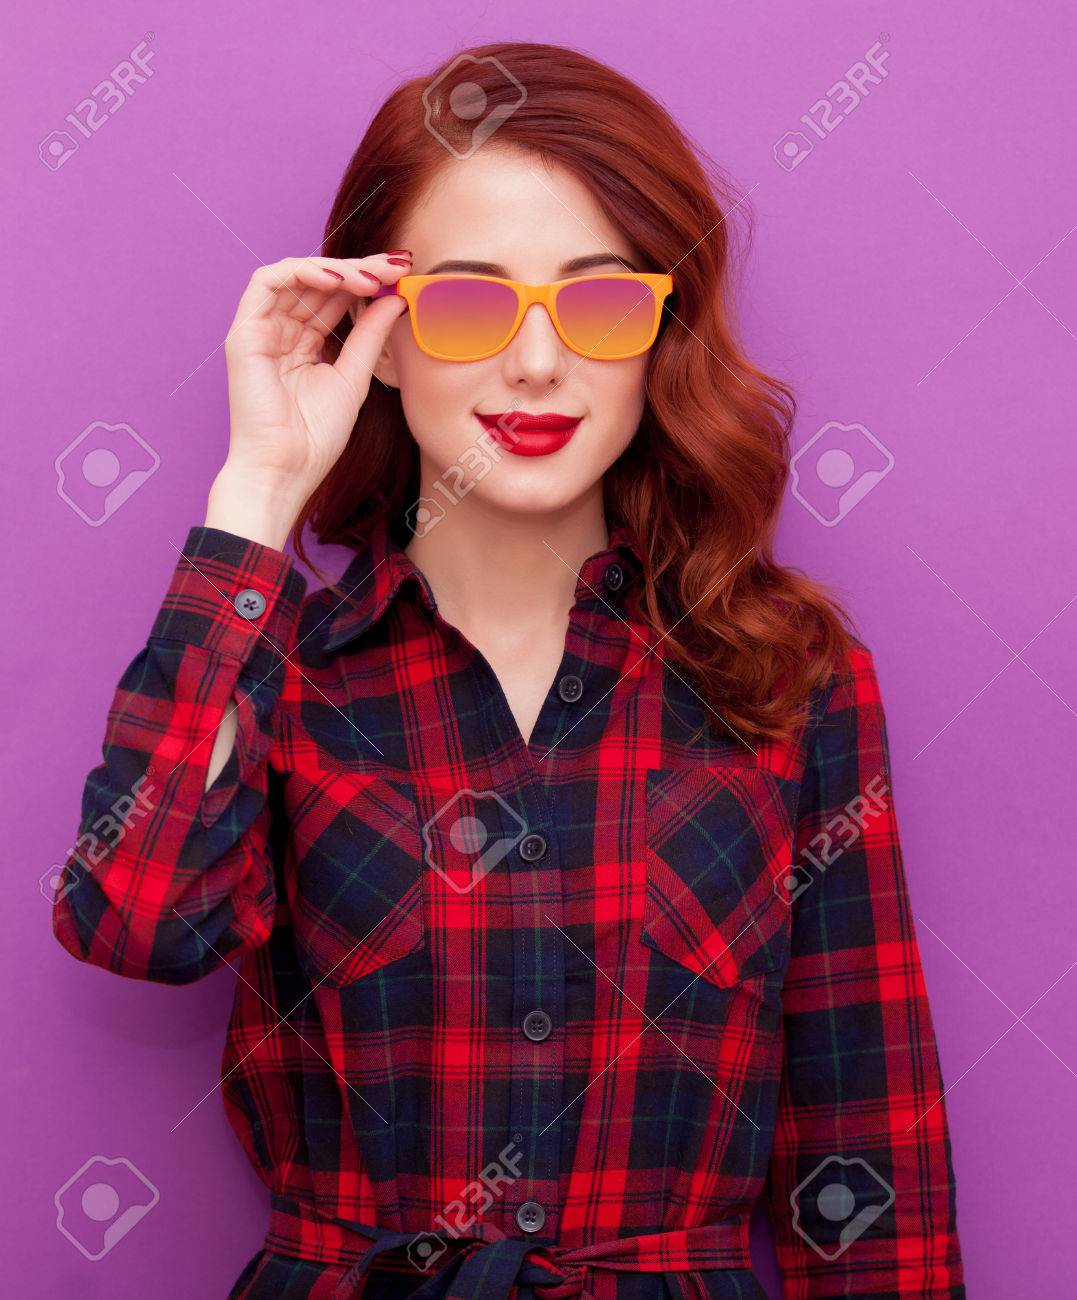 Redhead girl in sunglasses on violet background - 46650128